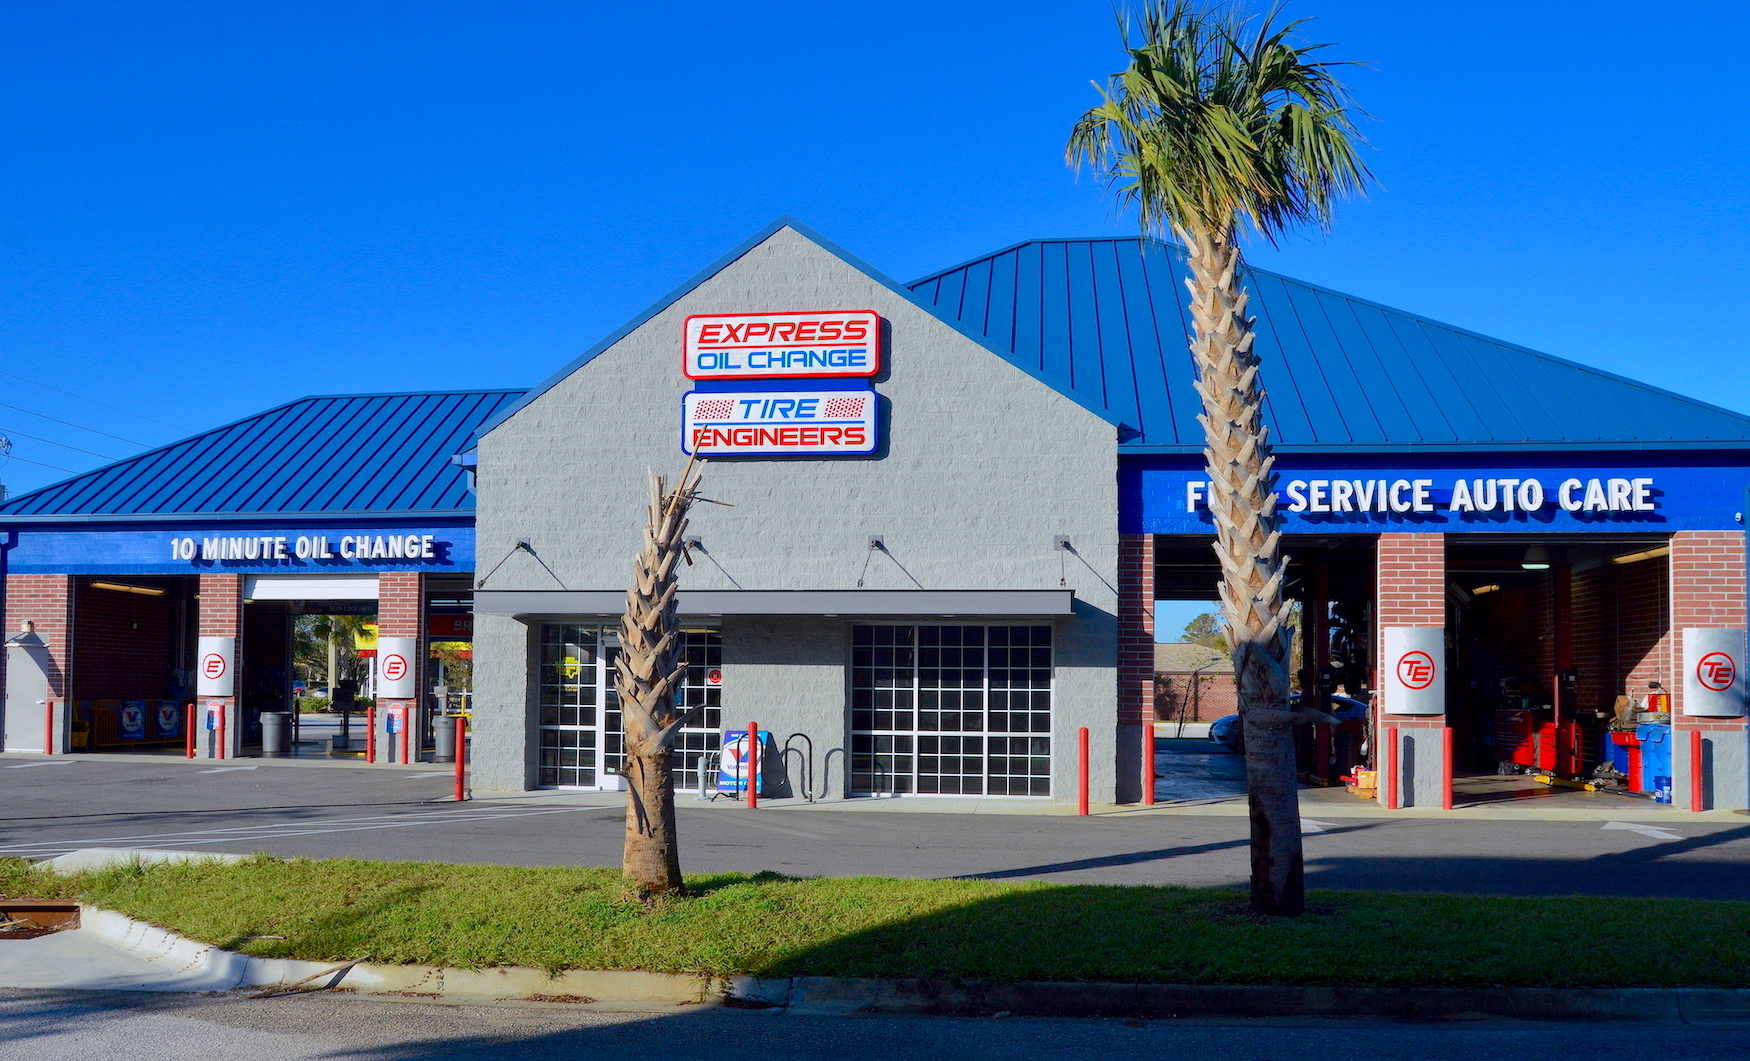 Express Oil Change & Tire Engineers Jacksonville, FL - Beach Boulevard store